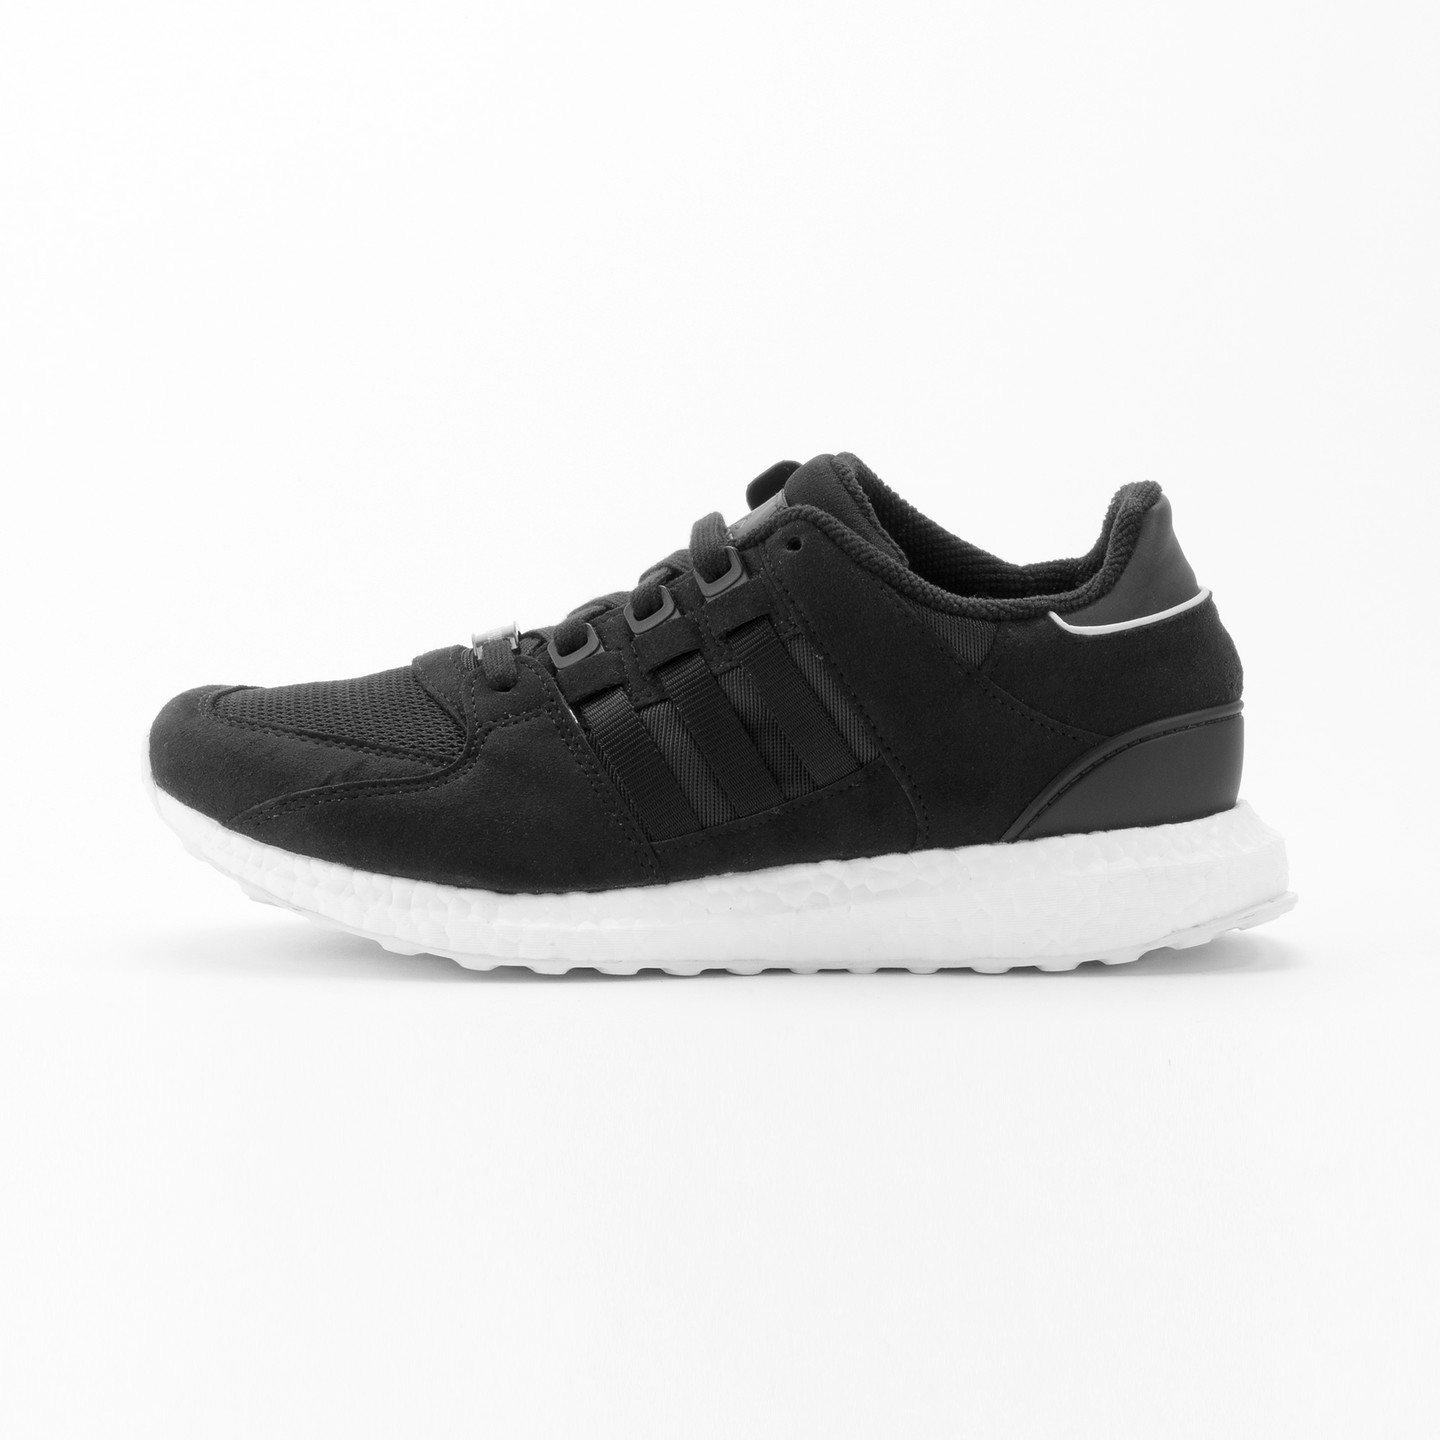 Adidas Equipment Support 93/16 Core Black / Running White BY9148-42